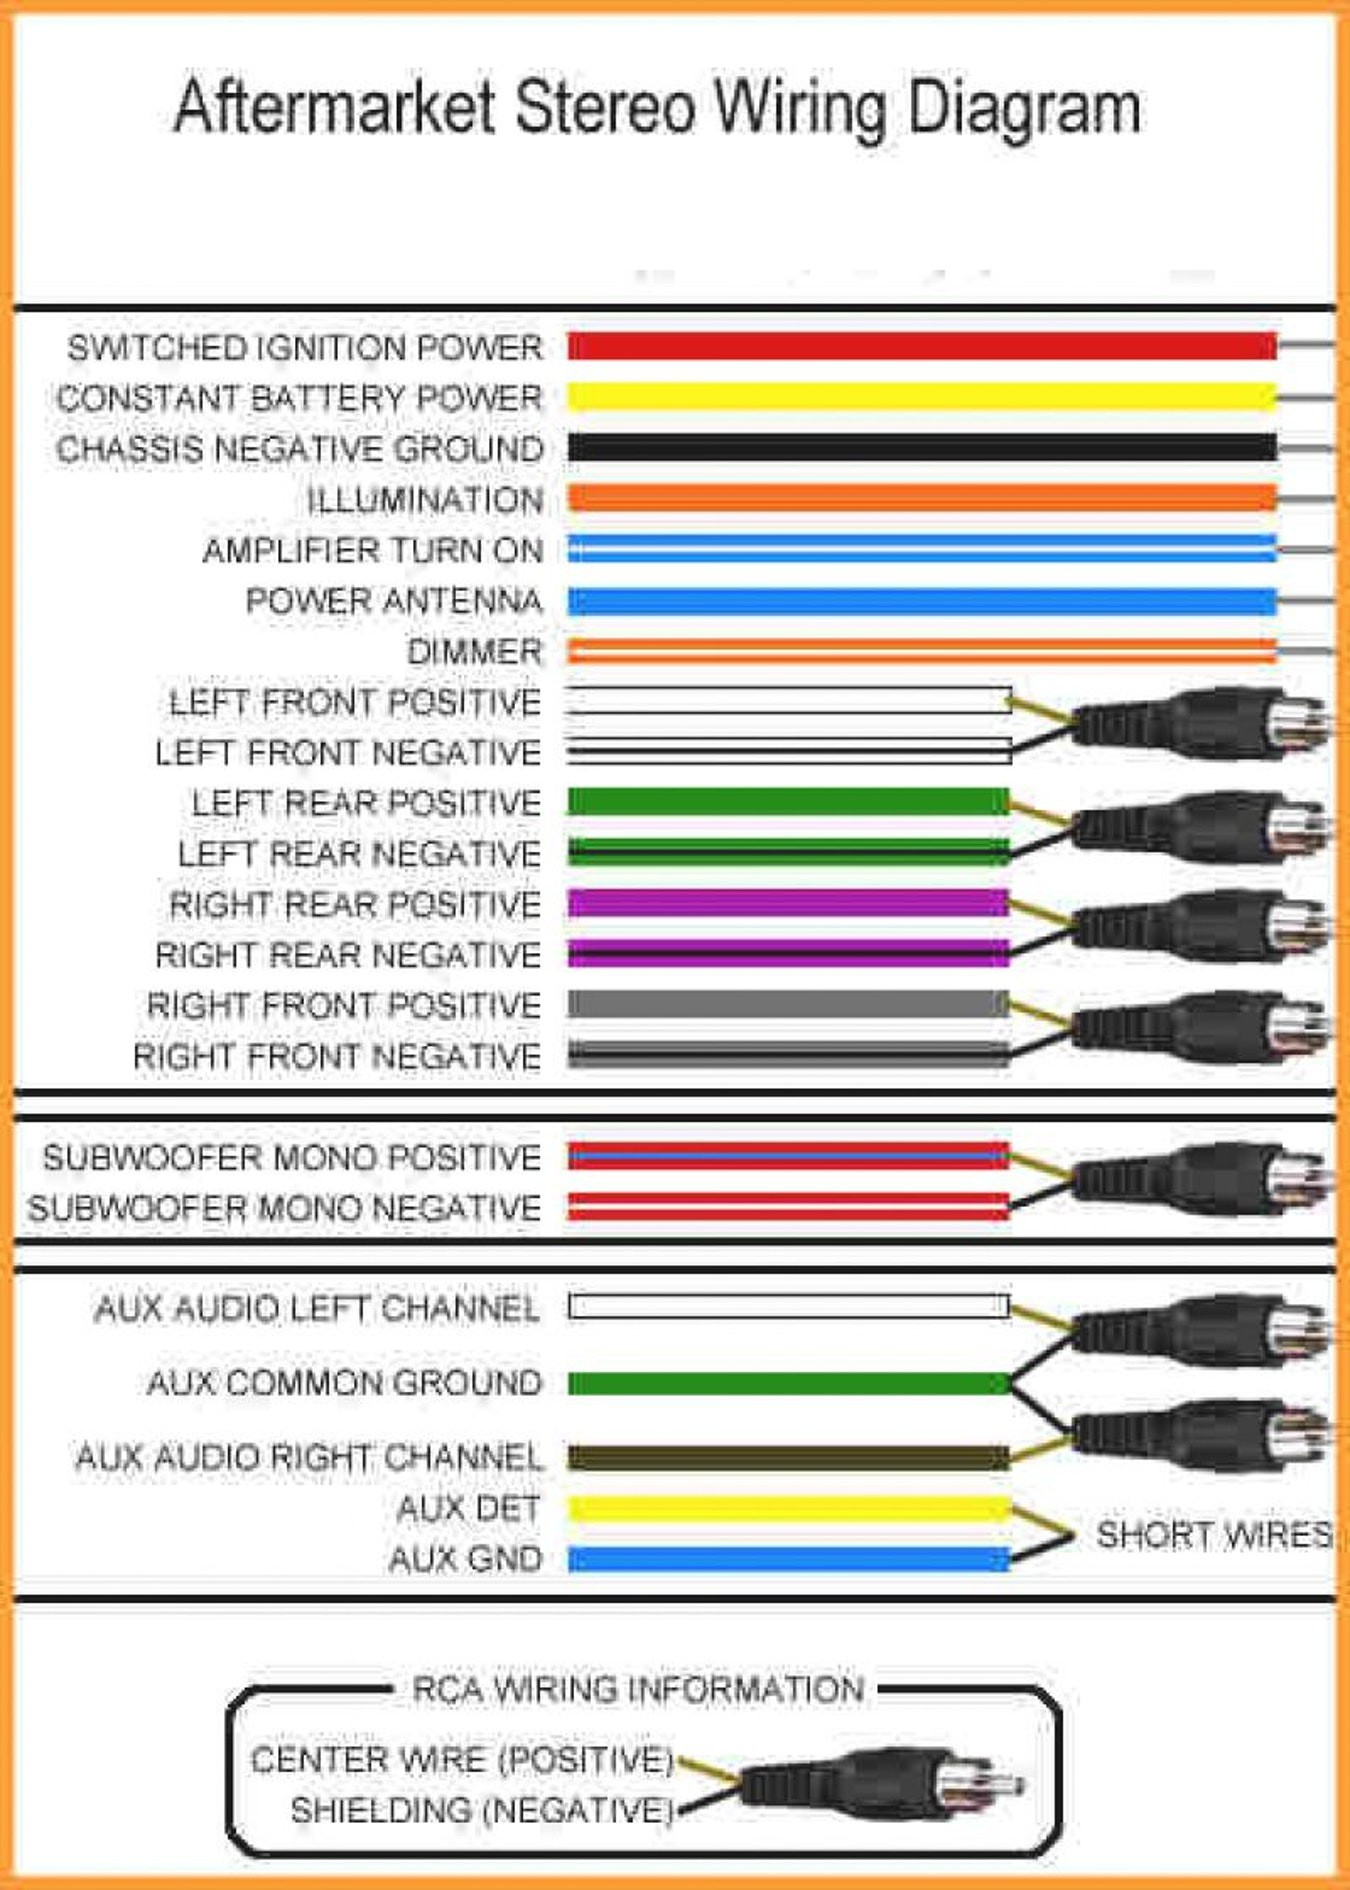 Sony Stereo Wiring Colors - Wiring Diagrams Click - Pioneer Radio Wiring Diagram Colors